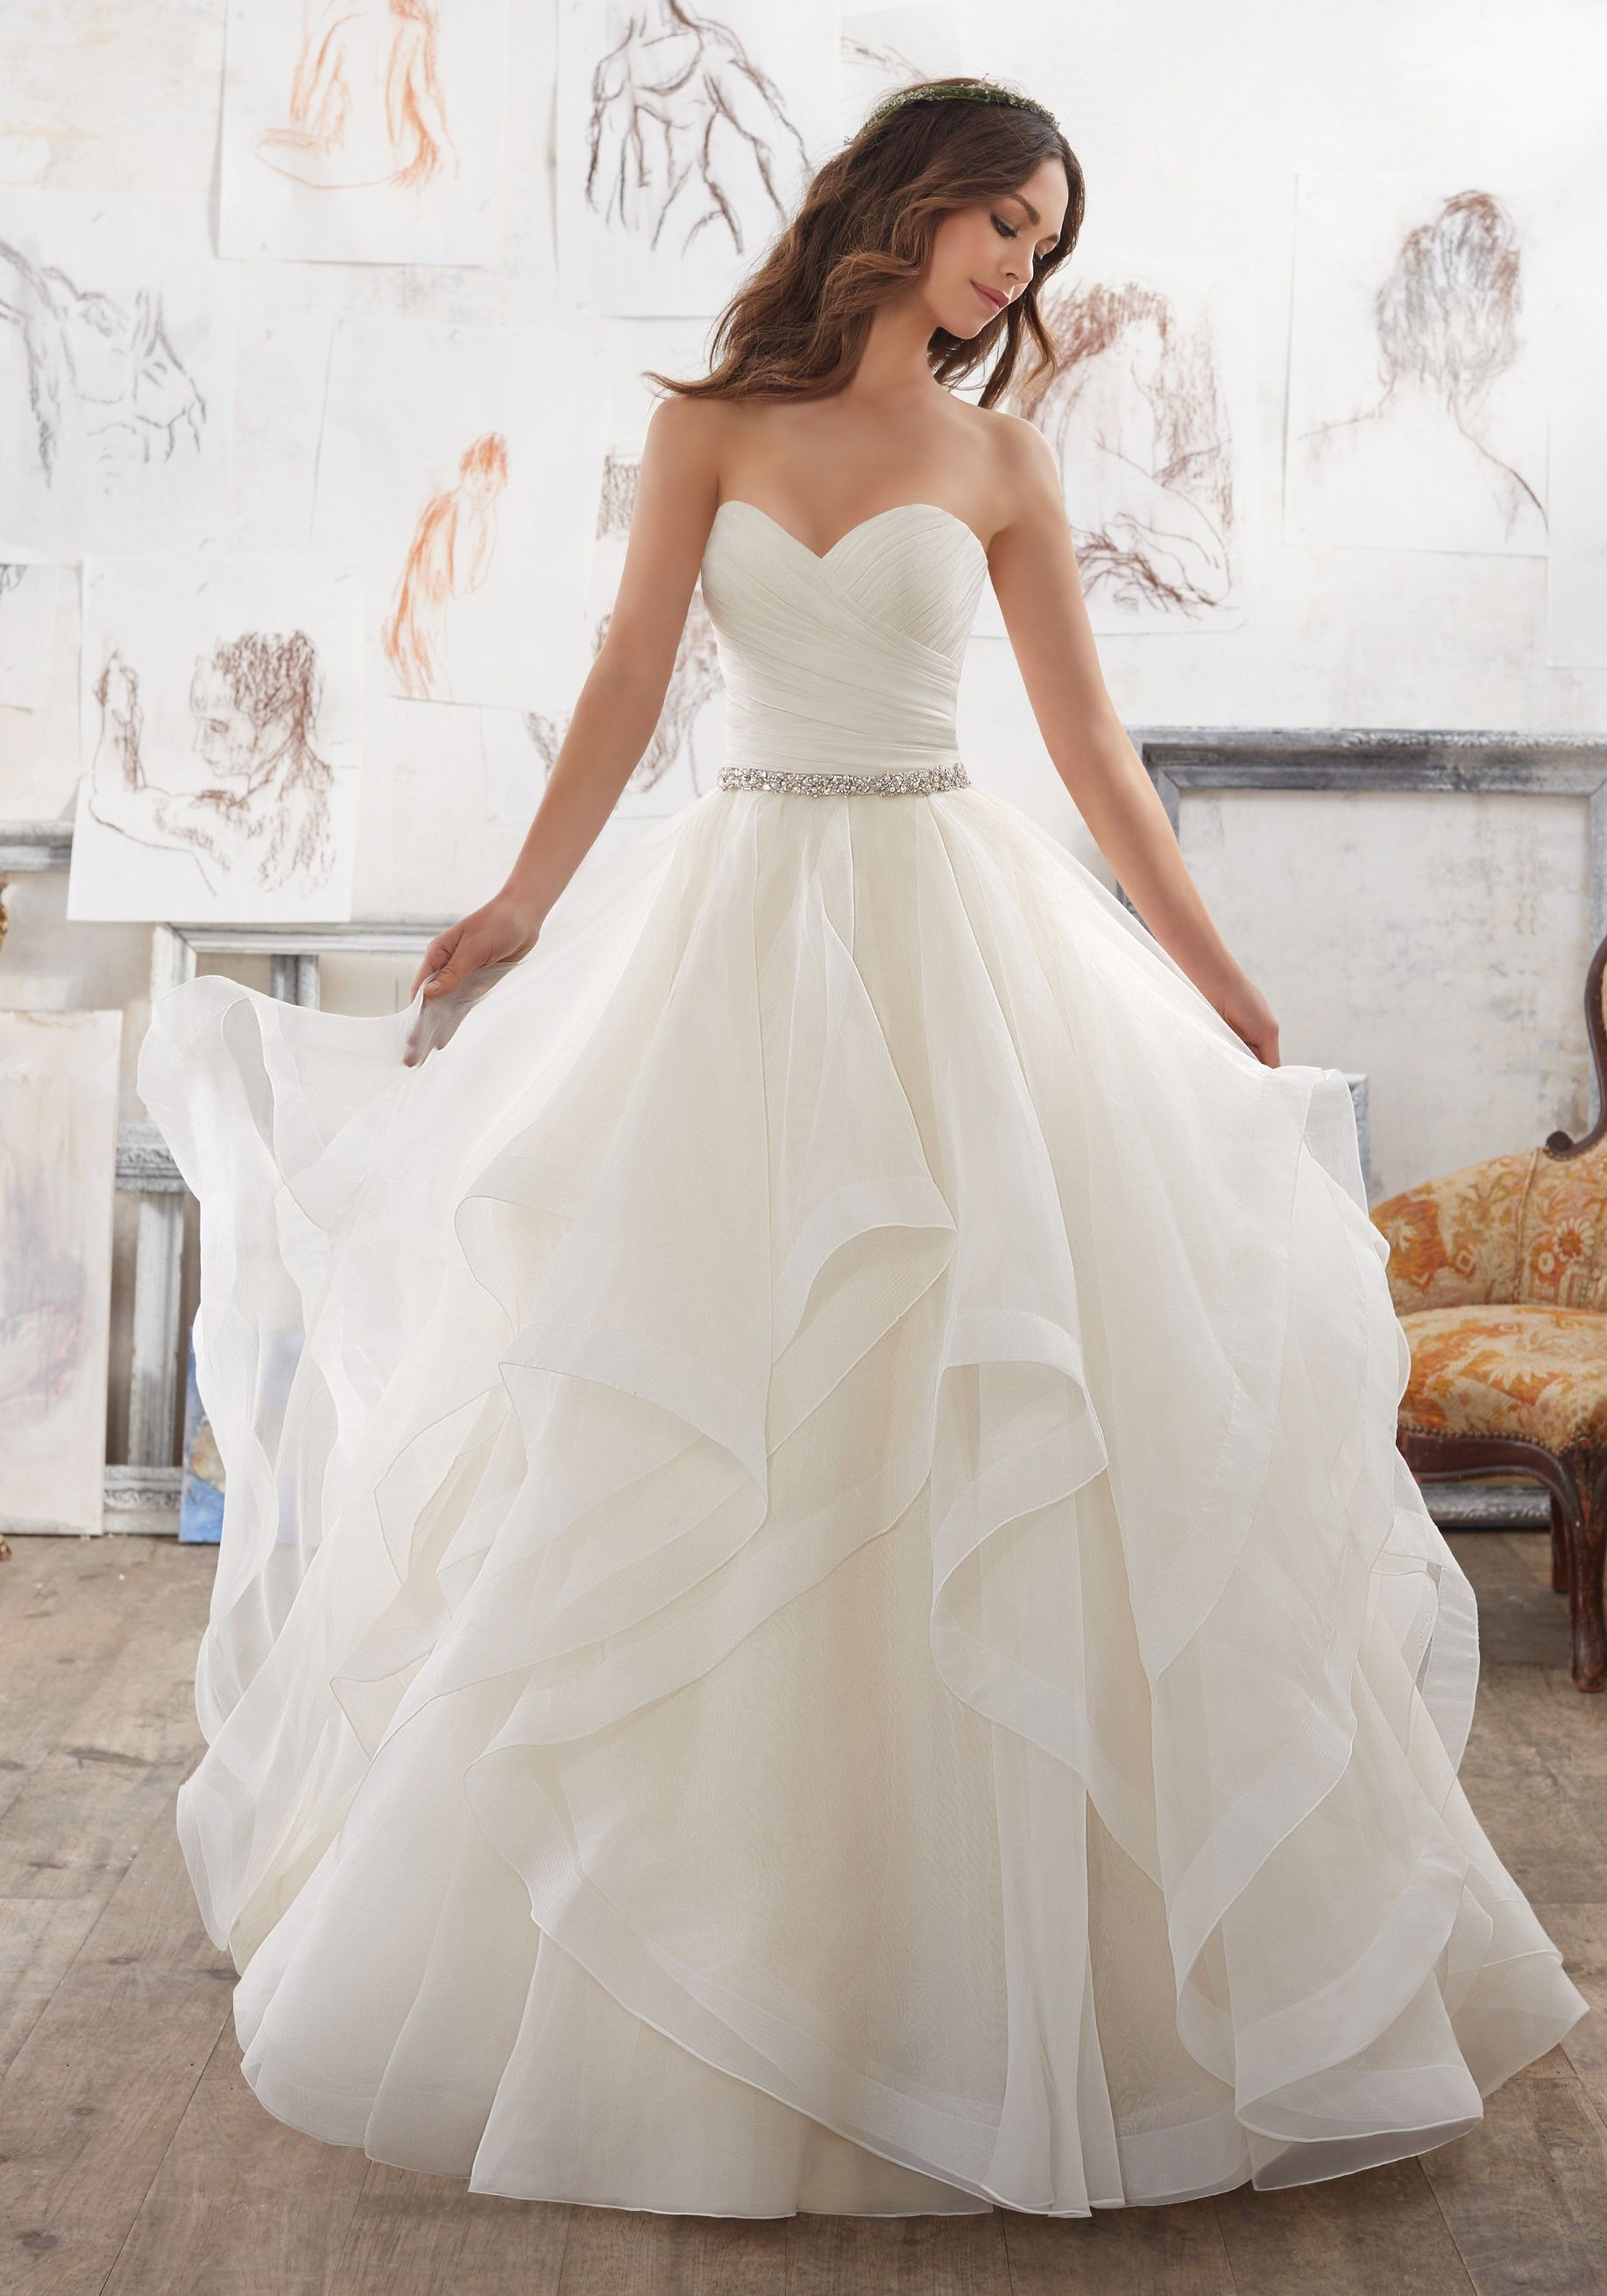 Wedding dresses bridesmaid dresses prom dresses and bridal dresses